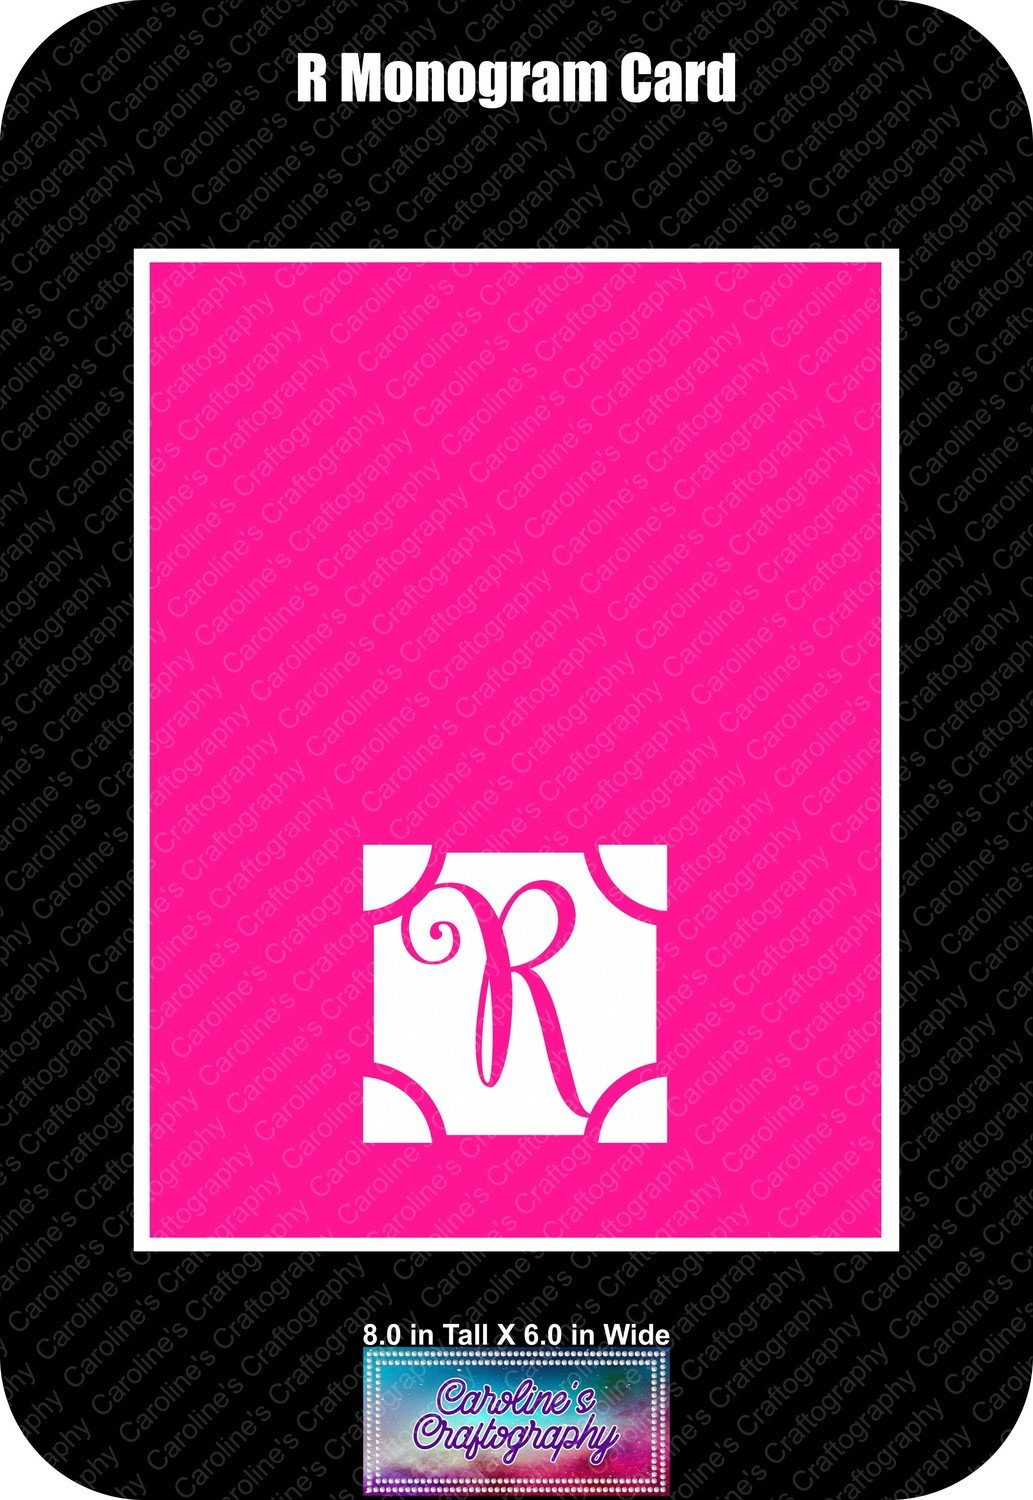 R Monogram Card Base